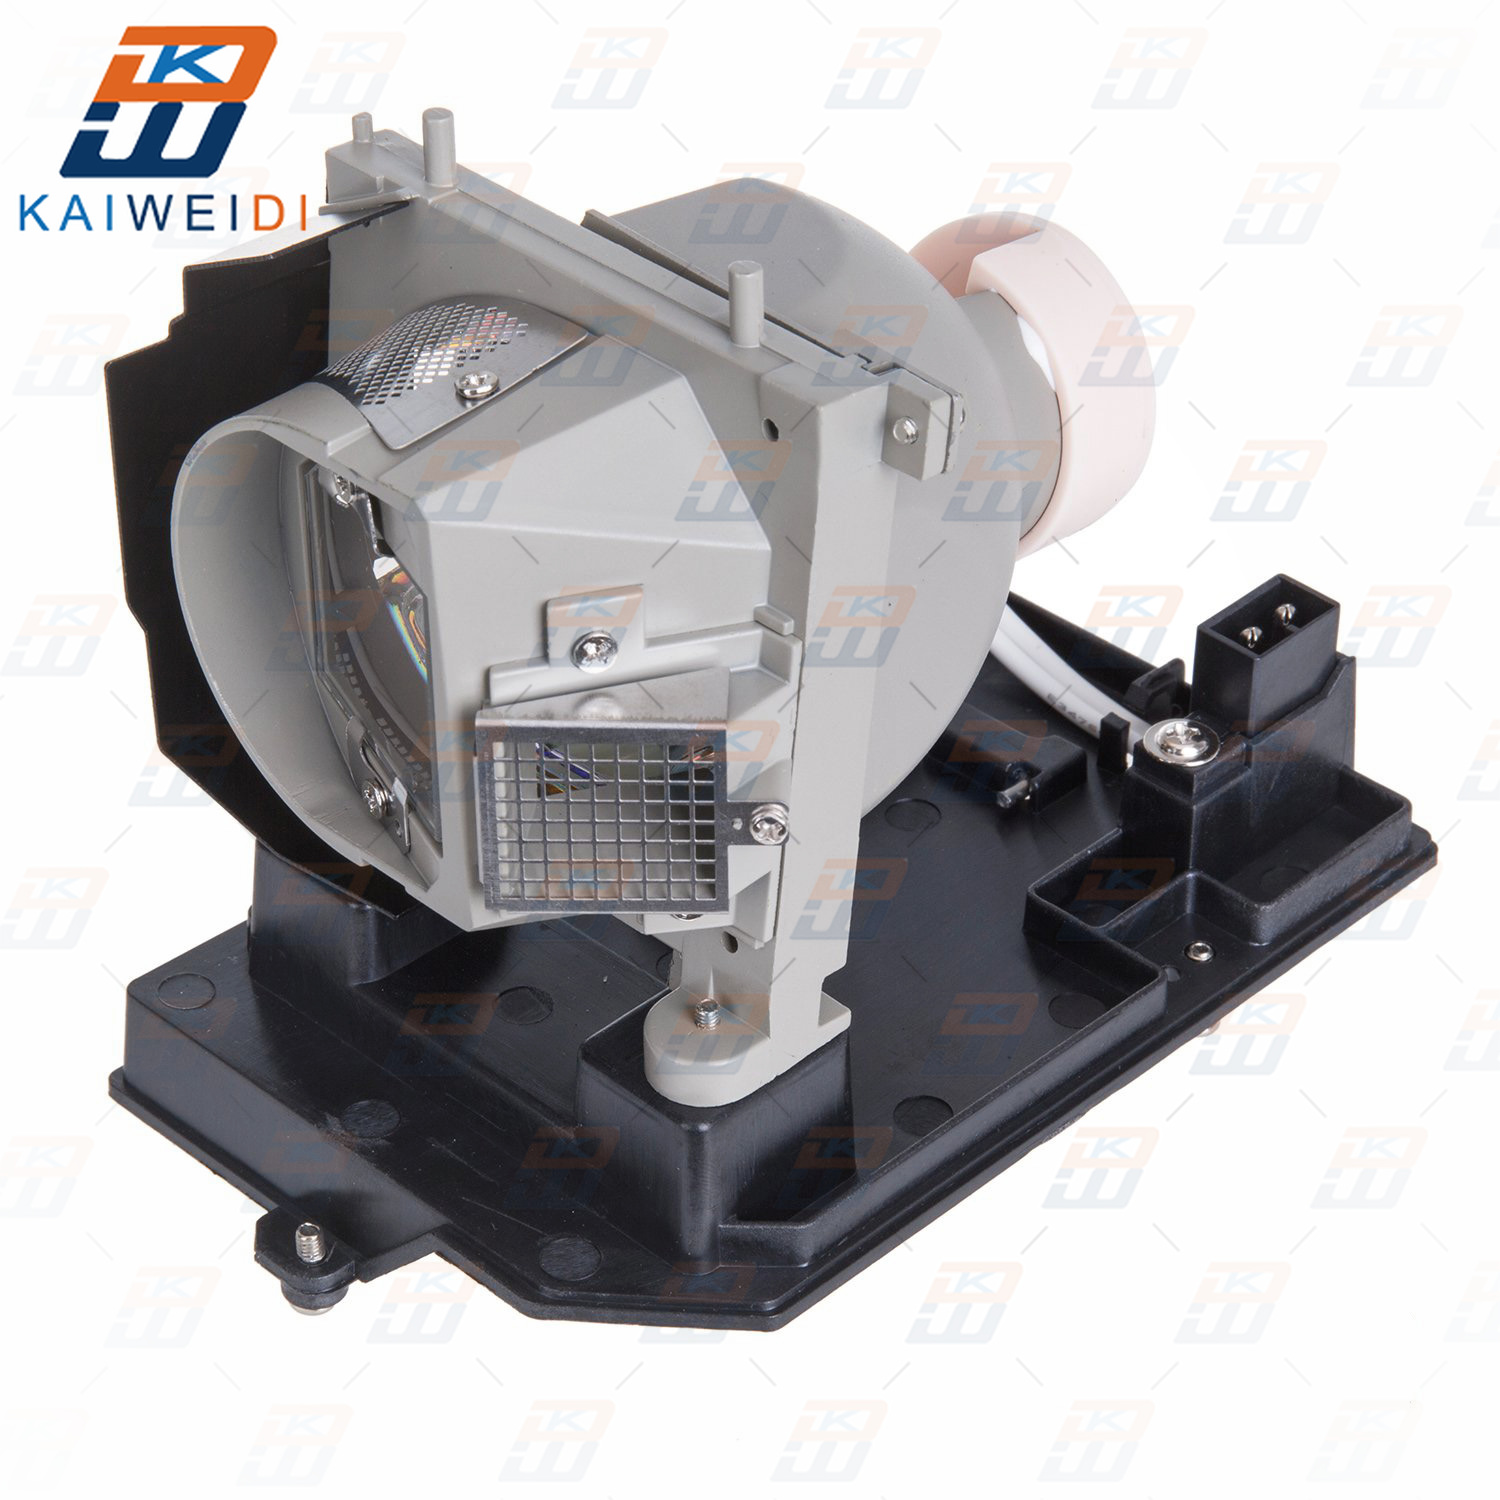 NP20LP U300X U310W U300XG U310WG U310W-WK1 Replacement Projector Lamp / Bulb Module For NEC With180 Day Warranty